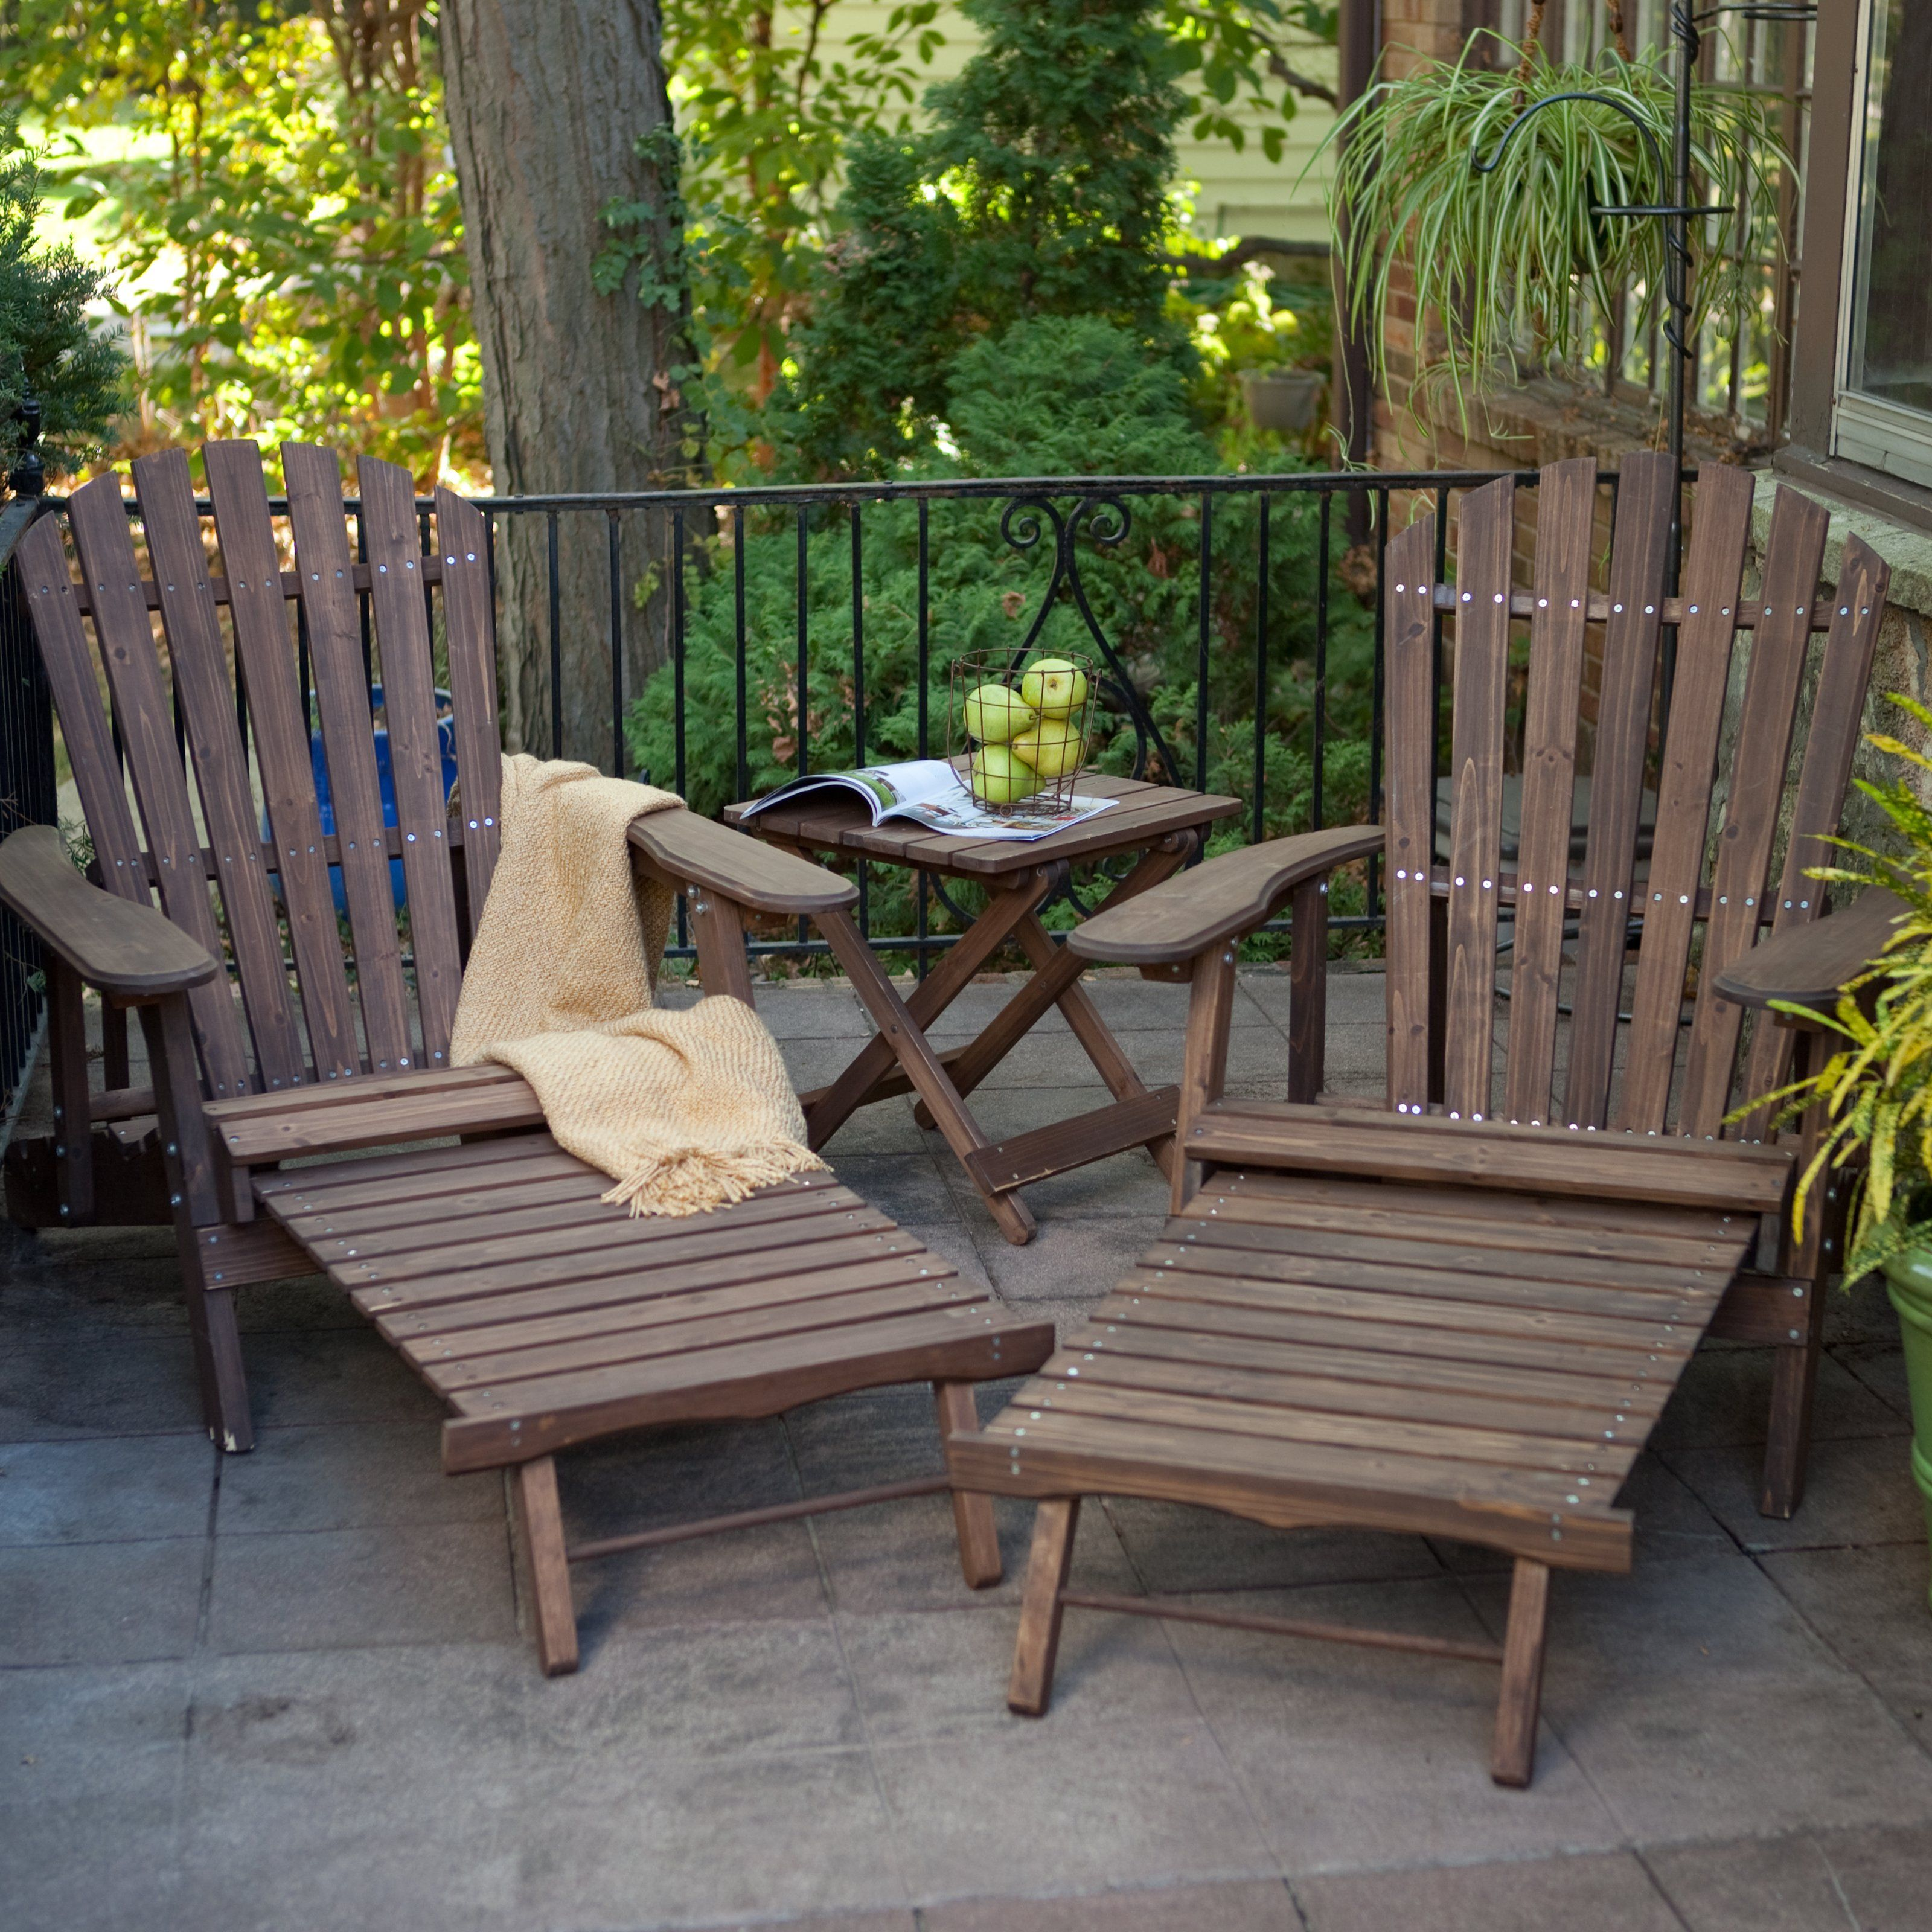 Adirondack Coffee Table Set: Have To Have It. Grand Daddy Oversized Adirondack Chair